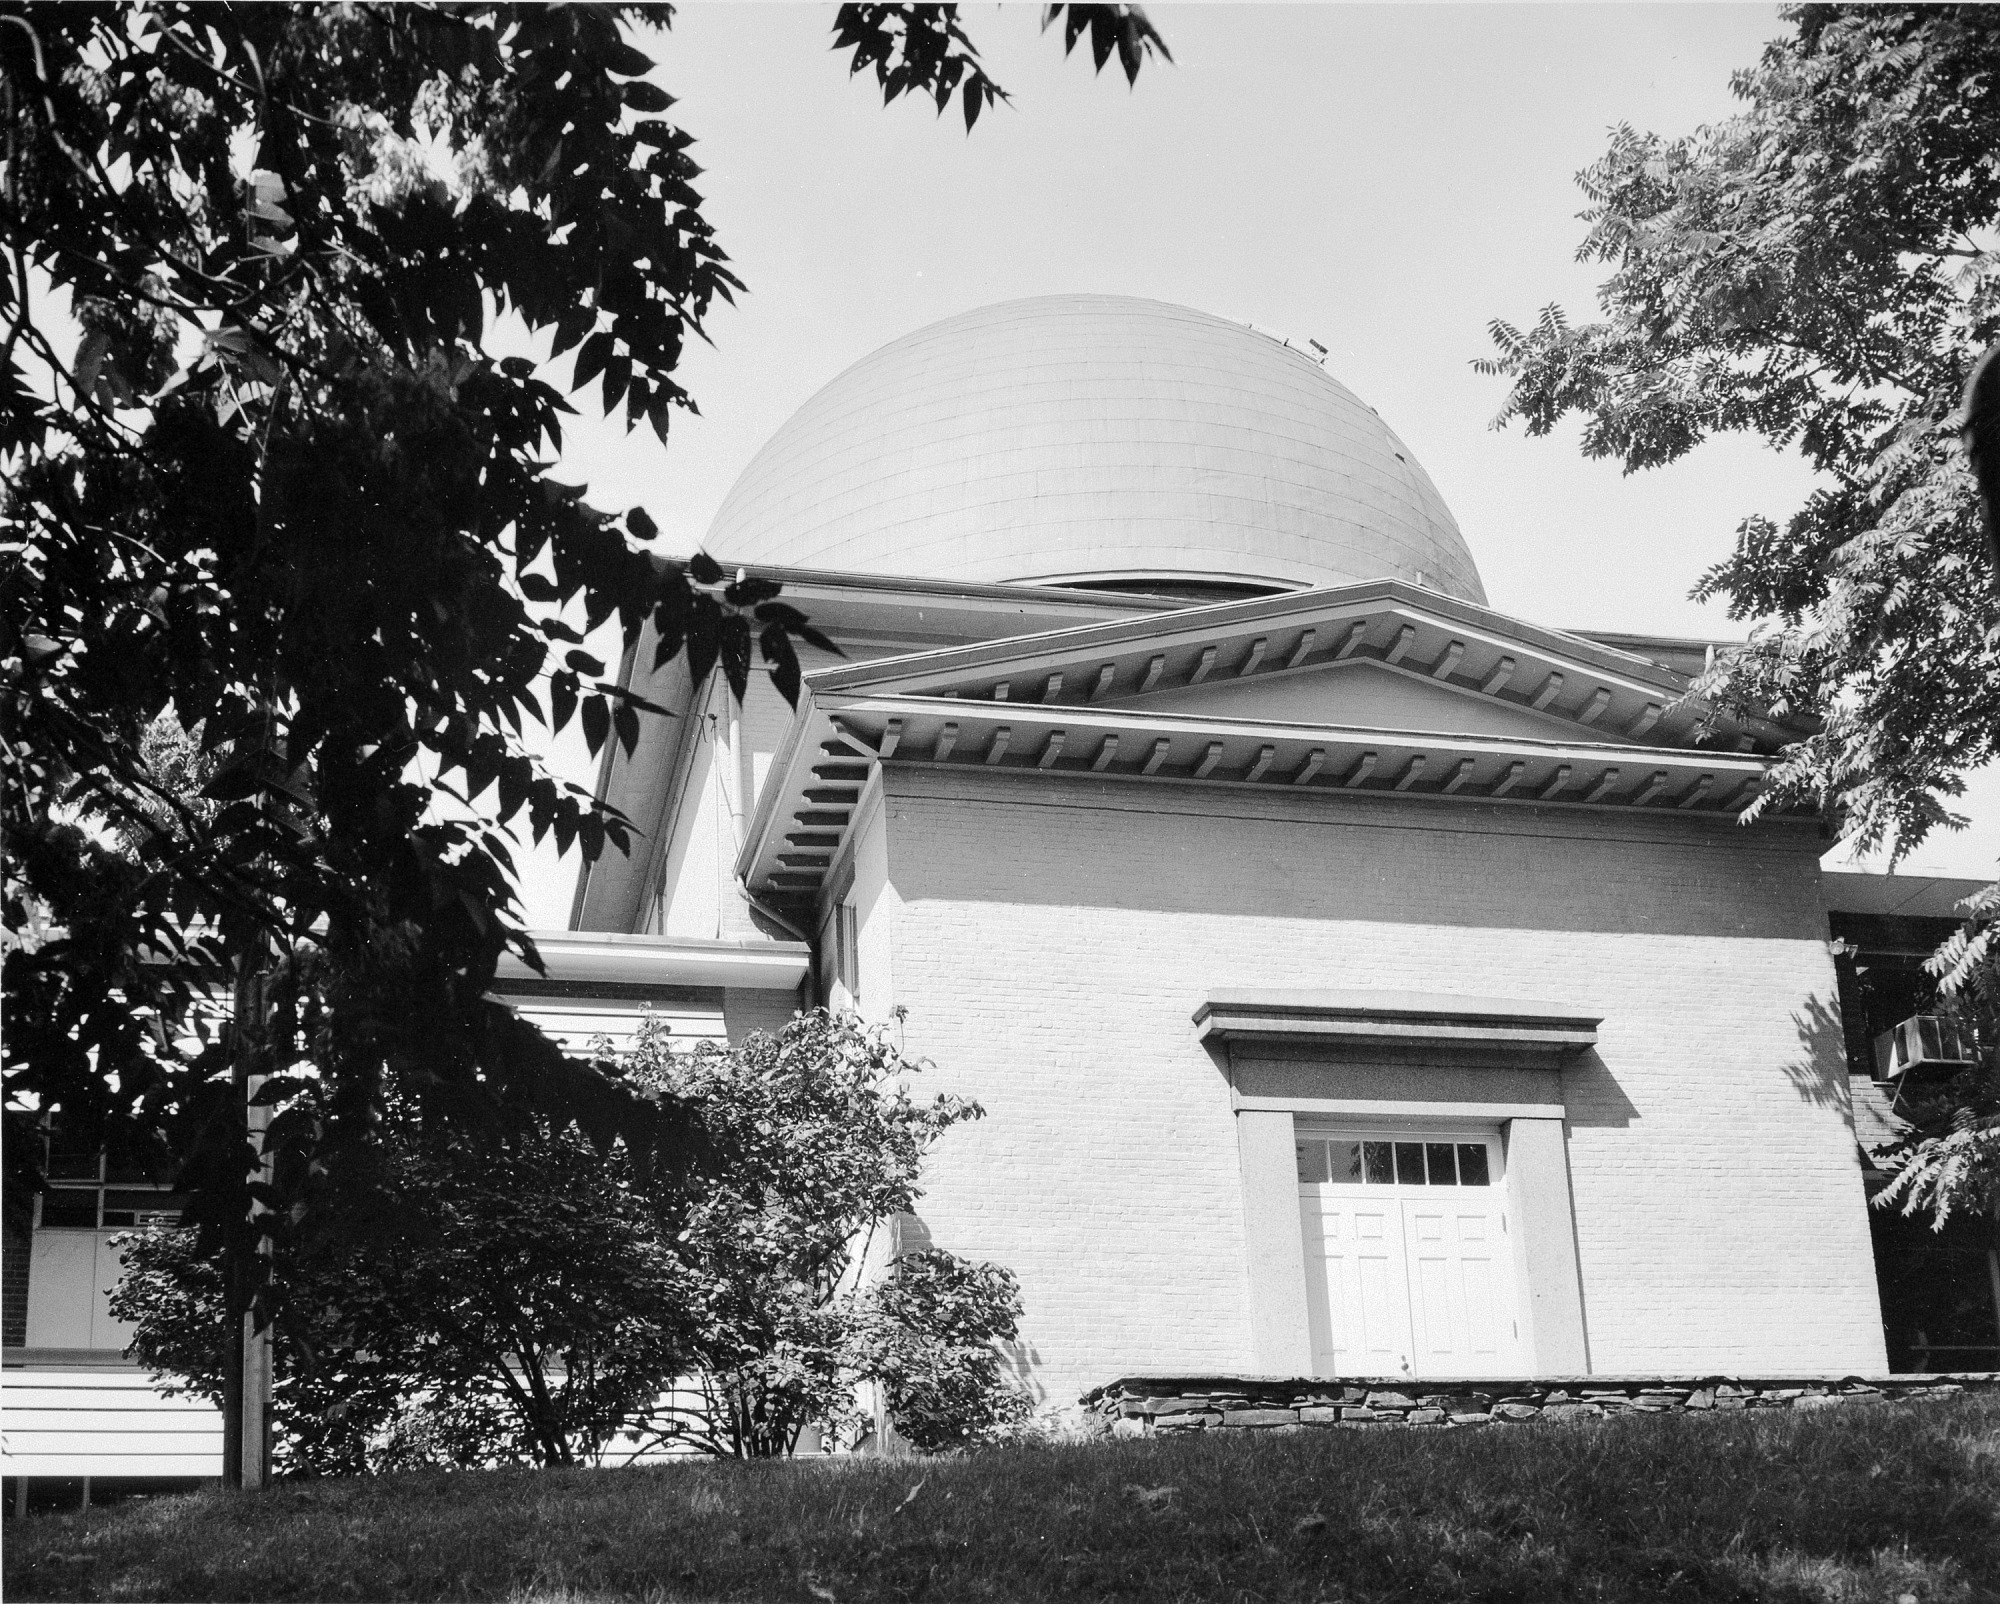 Harvard-Smithsonian Center for Astrophysics